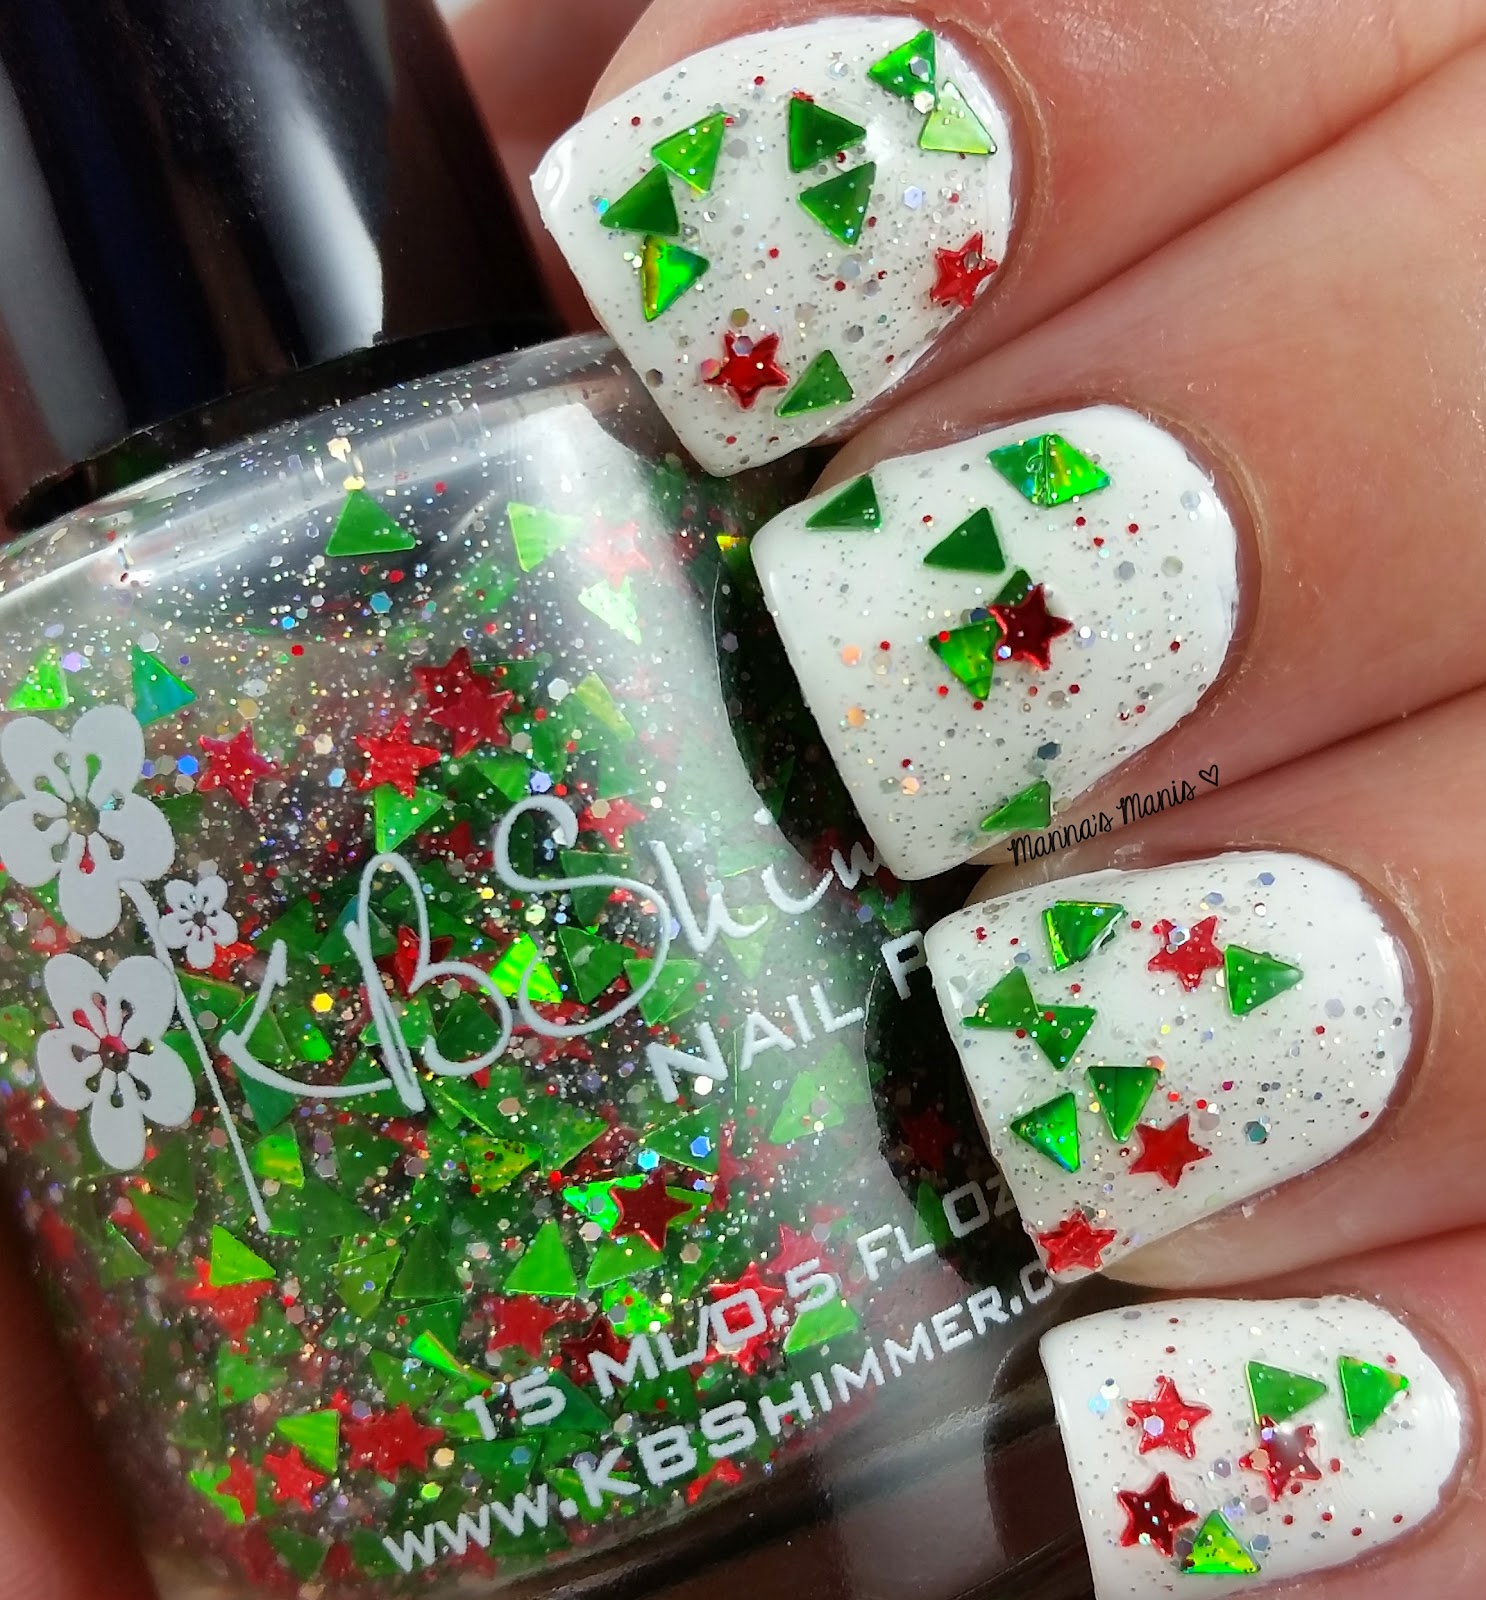 kbshimmer pineing for yule, a multicolored glitter topper